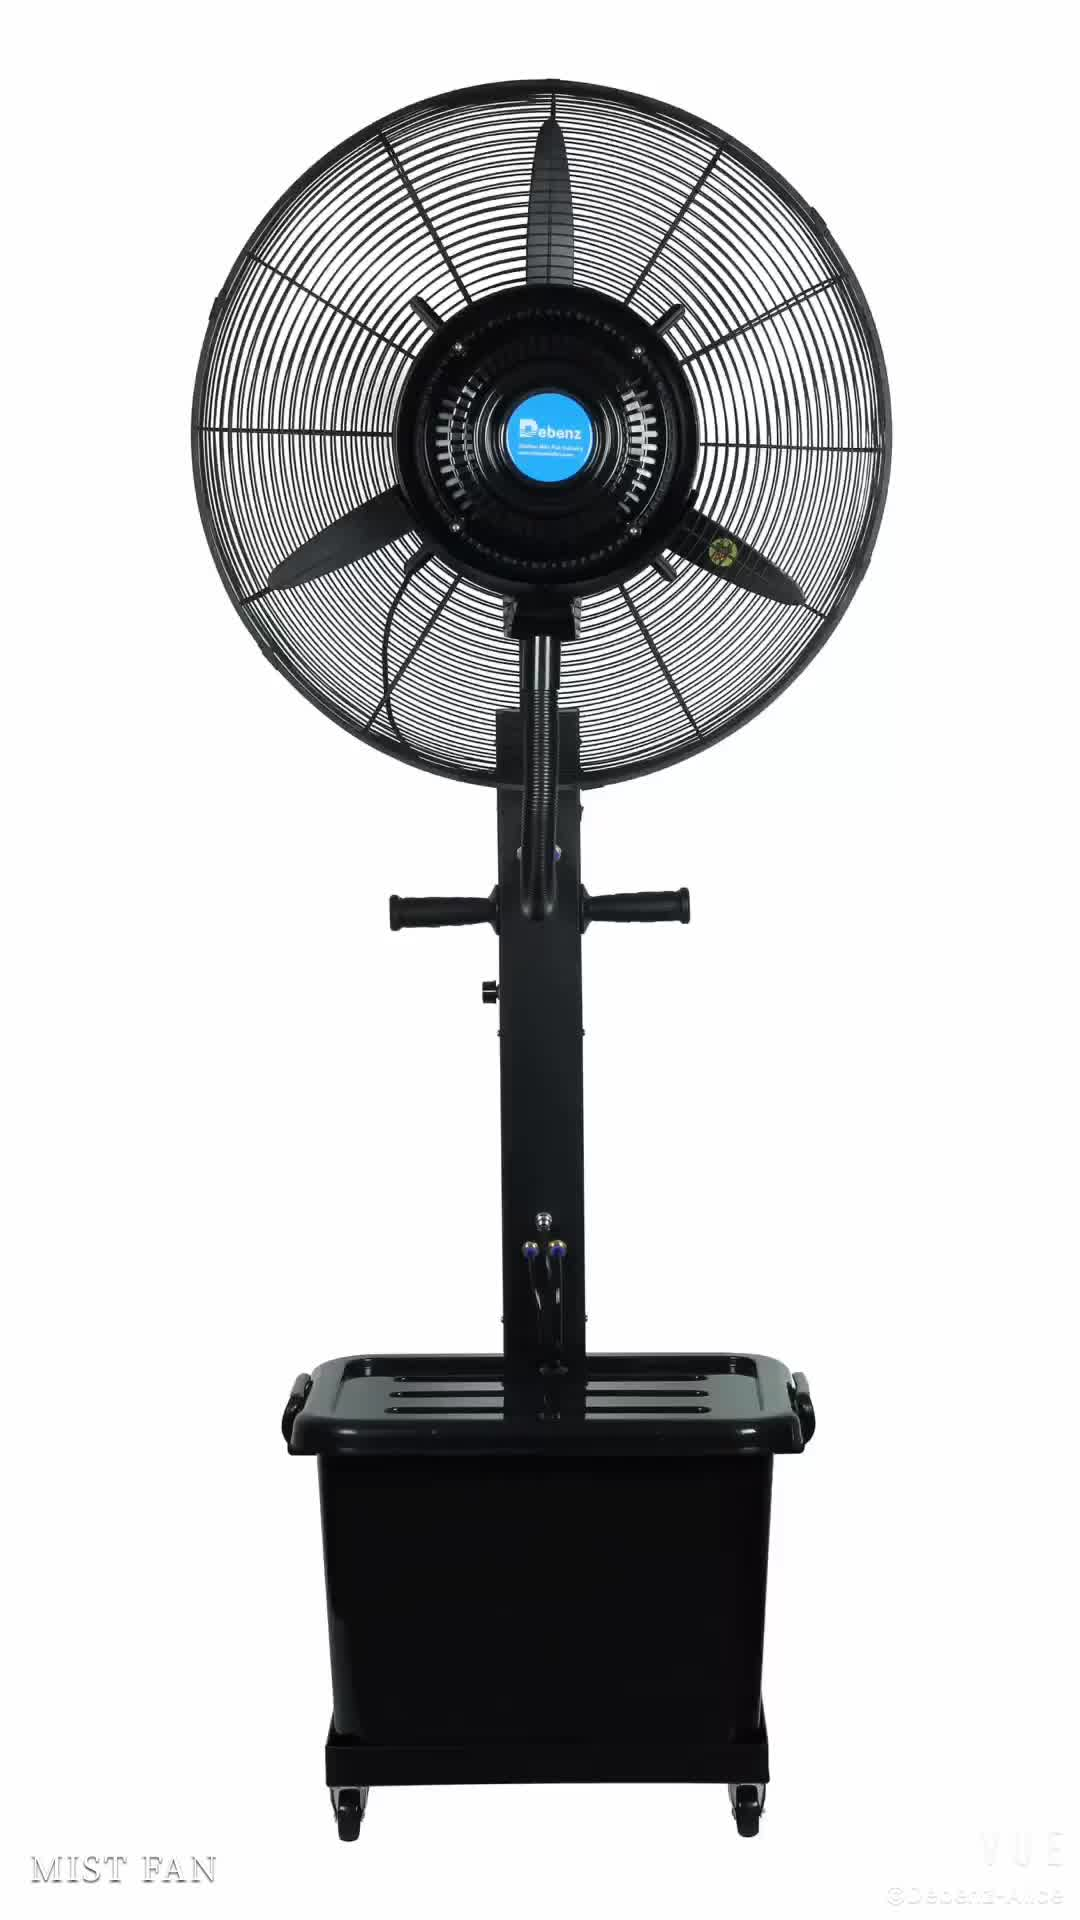 Cool Water Misting Fans : Debenz water spray cooling fan mist buy cool